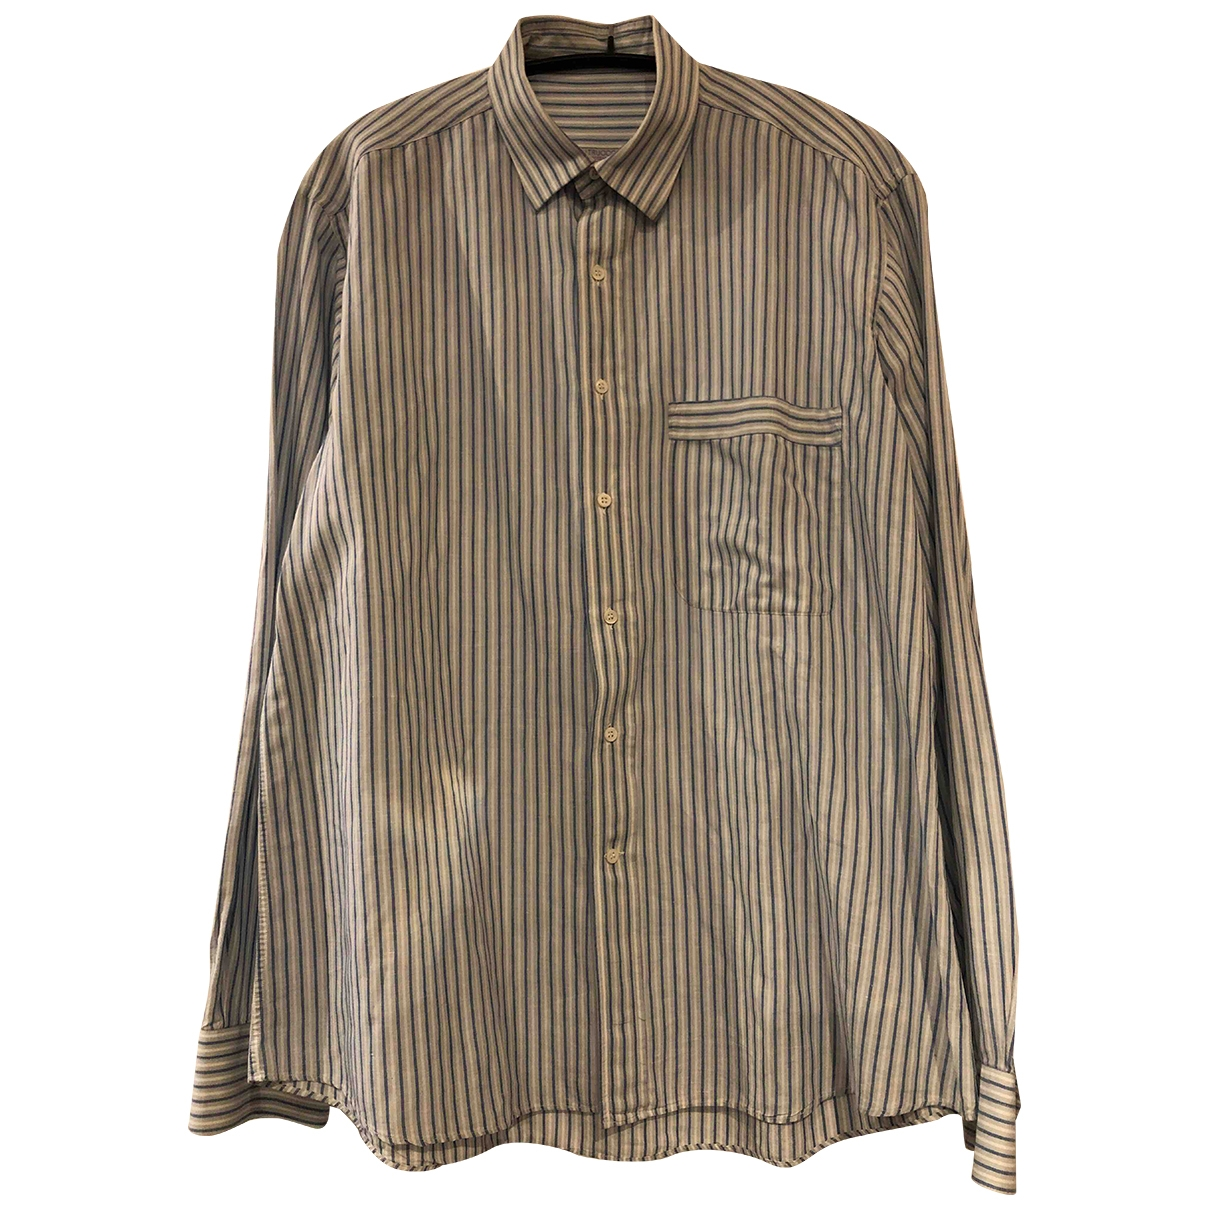 Non Signé / Unsigned \N Blue Cotton Shirts for Men 41 EU (tour de cou / collar)